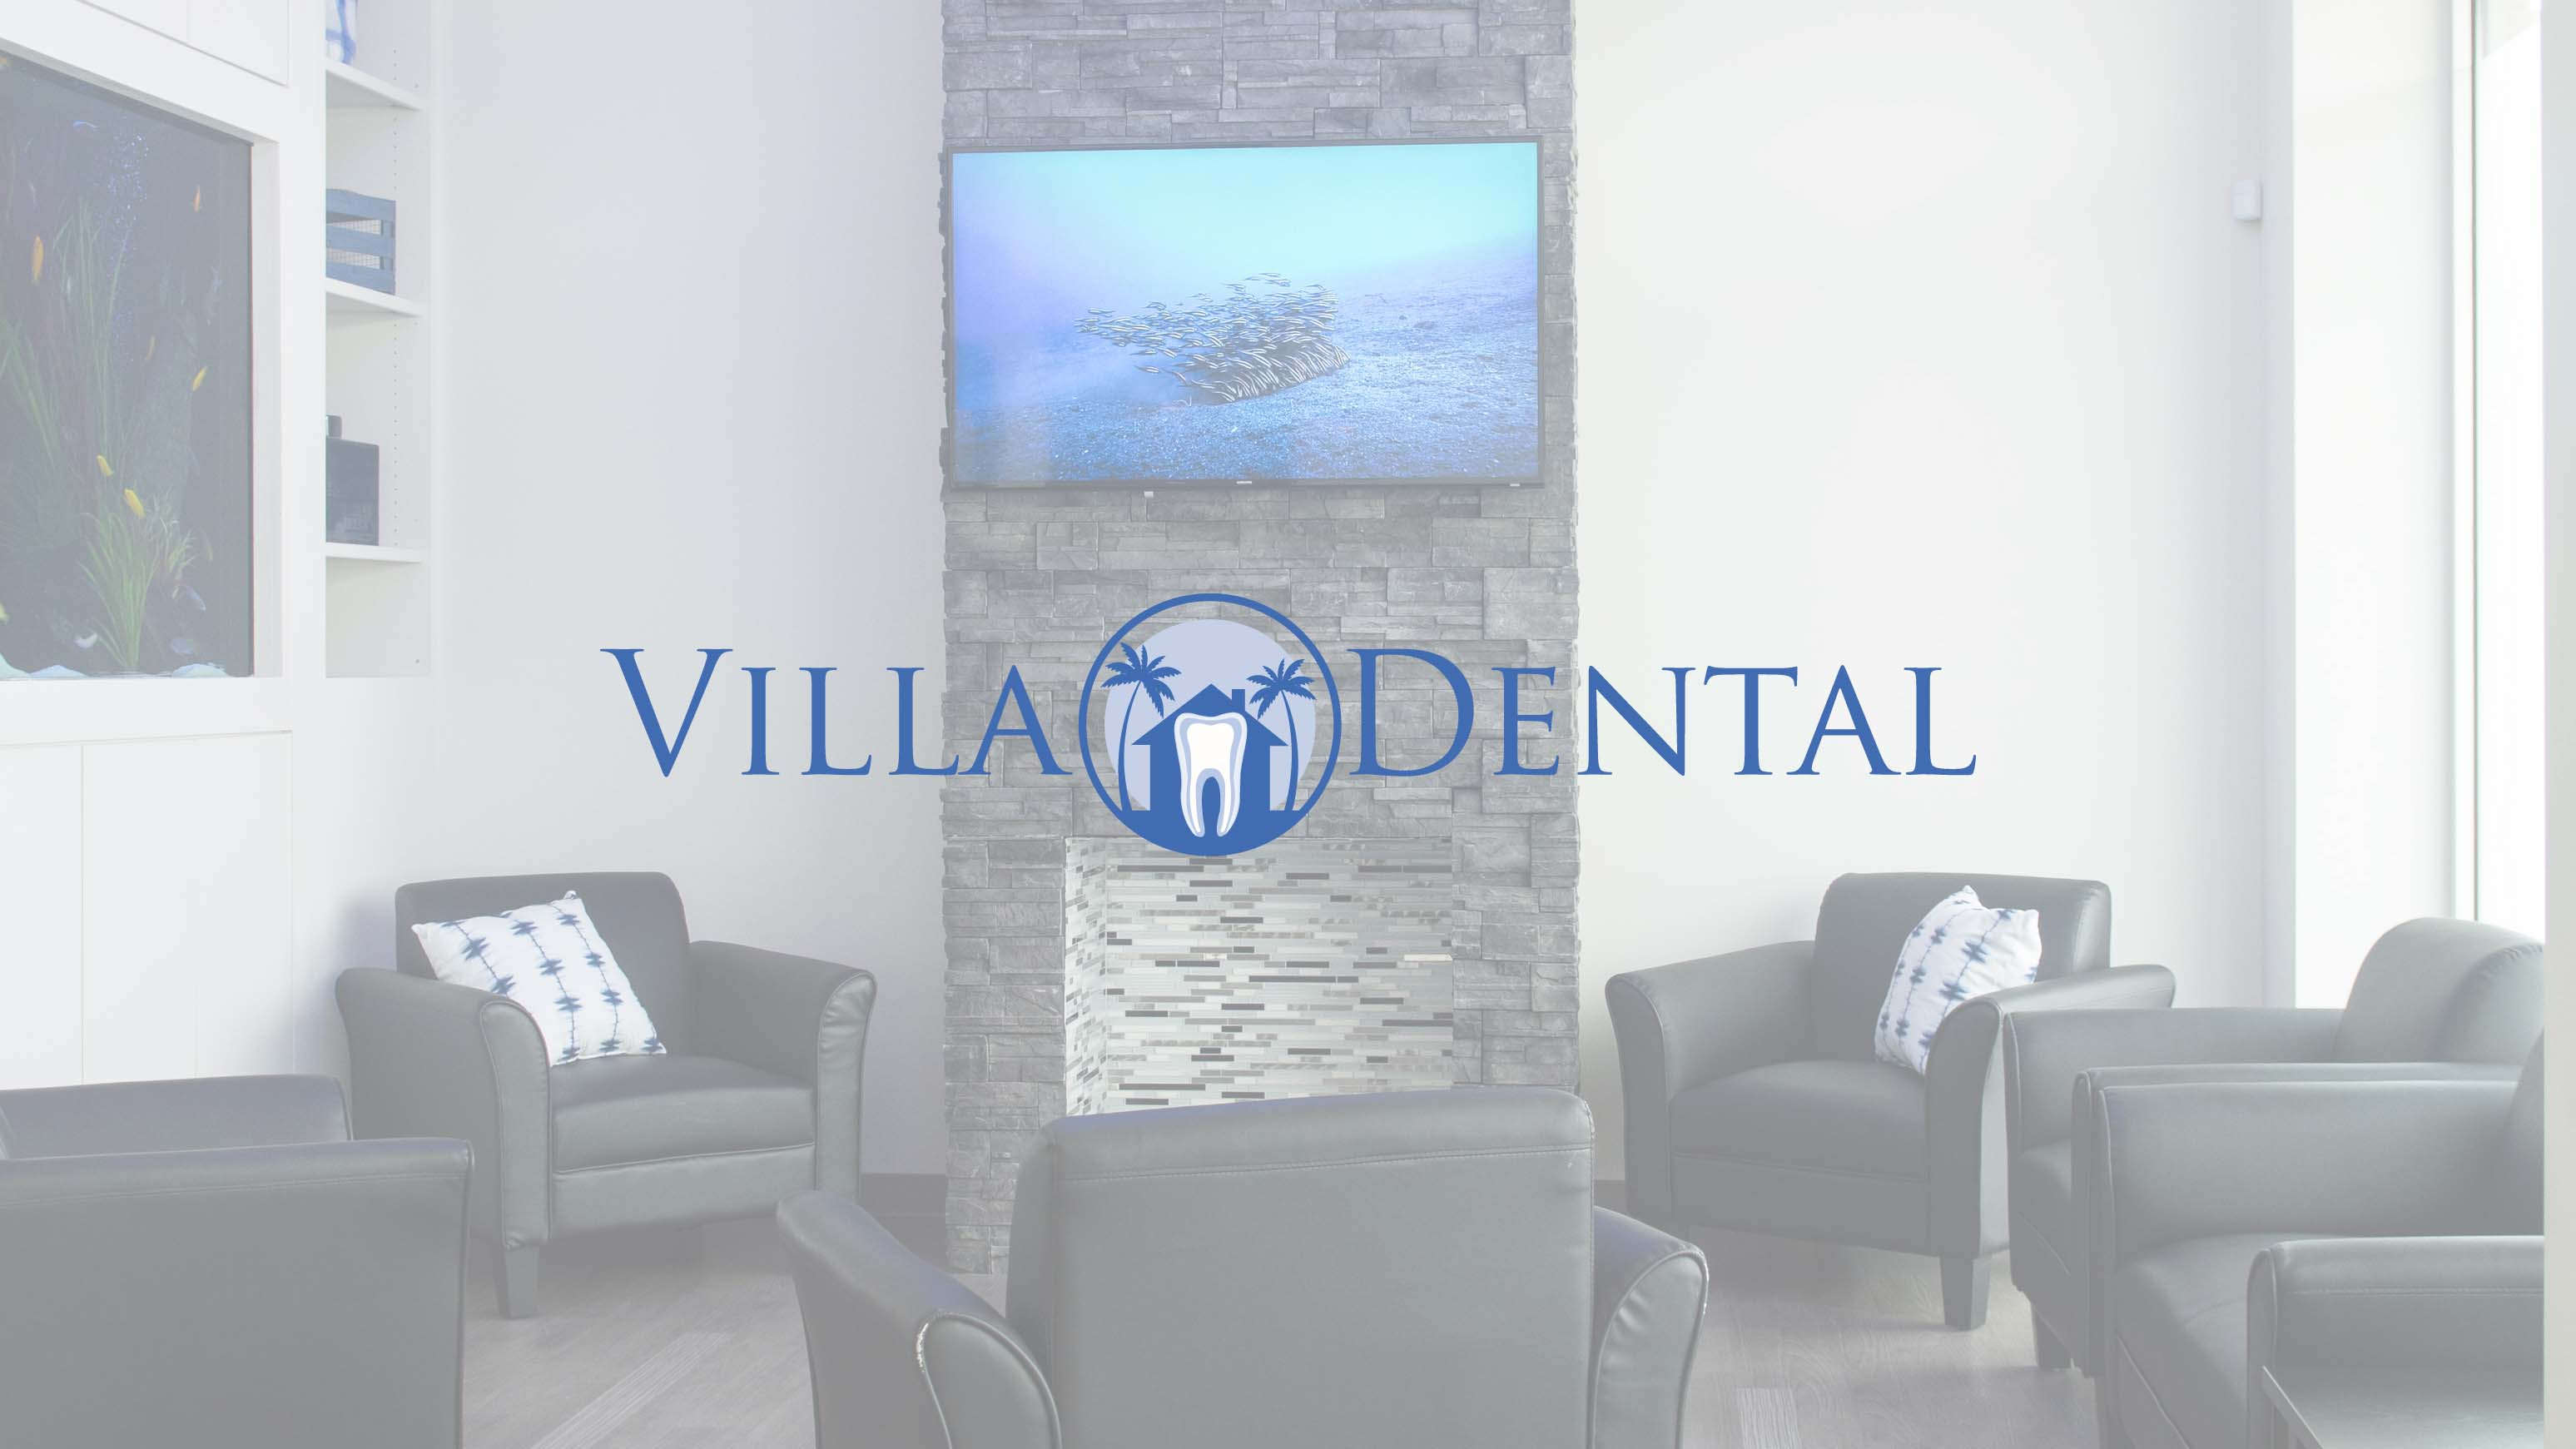 guaranteed best dd dentist dental sunset cancun original in price office clinic